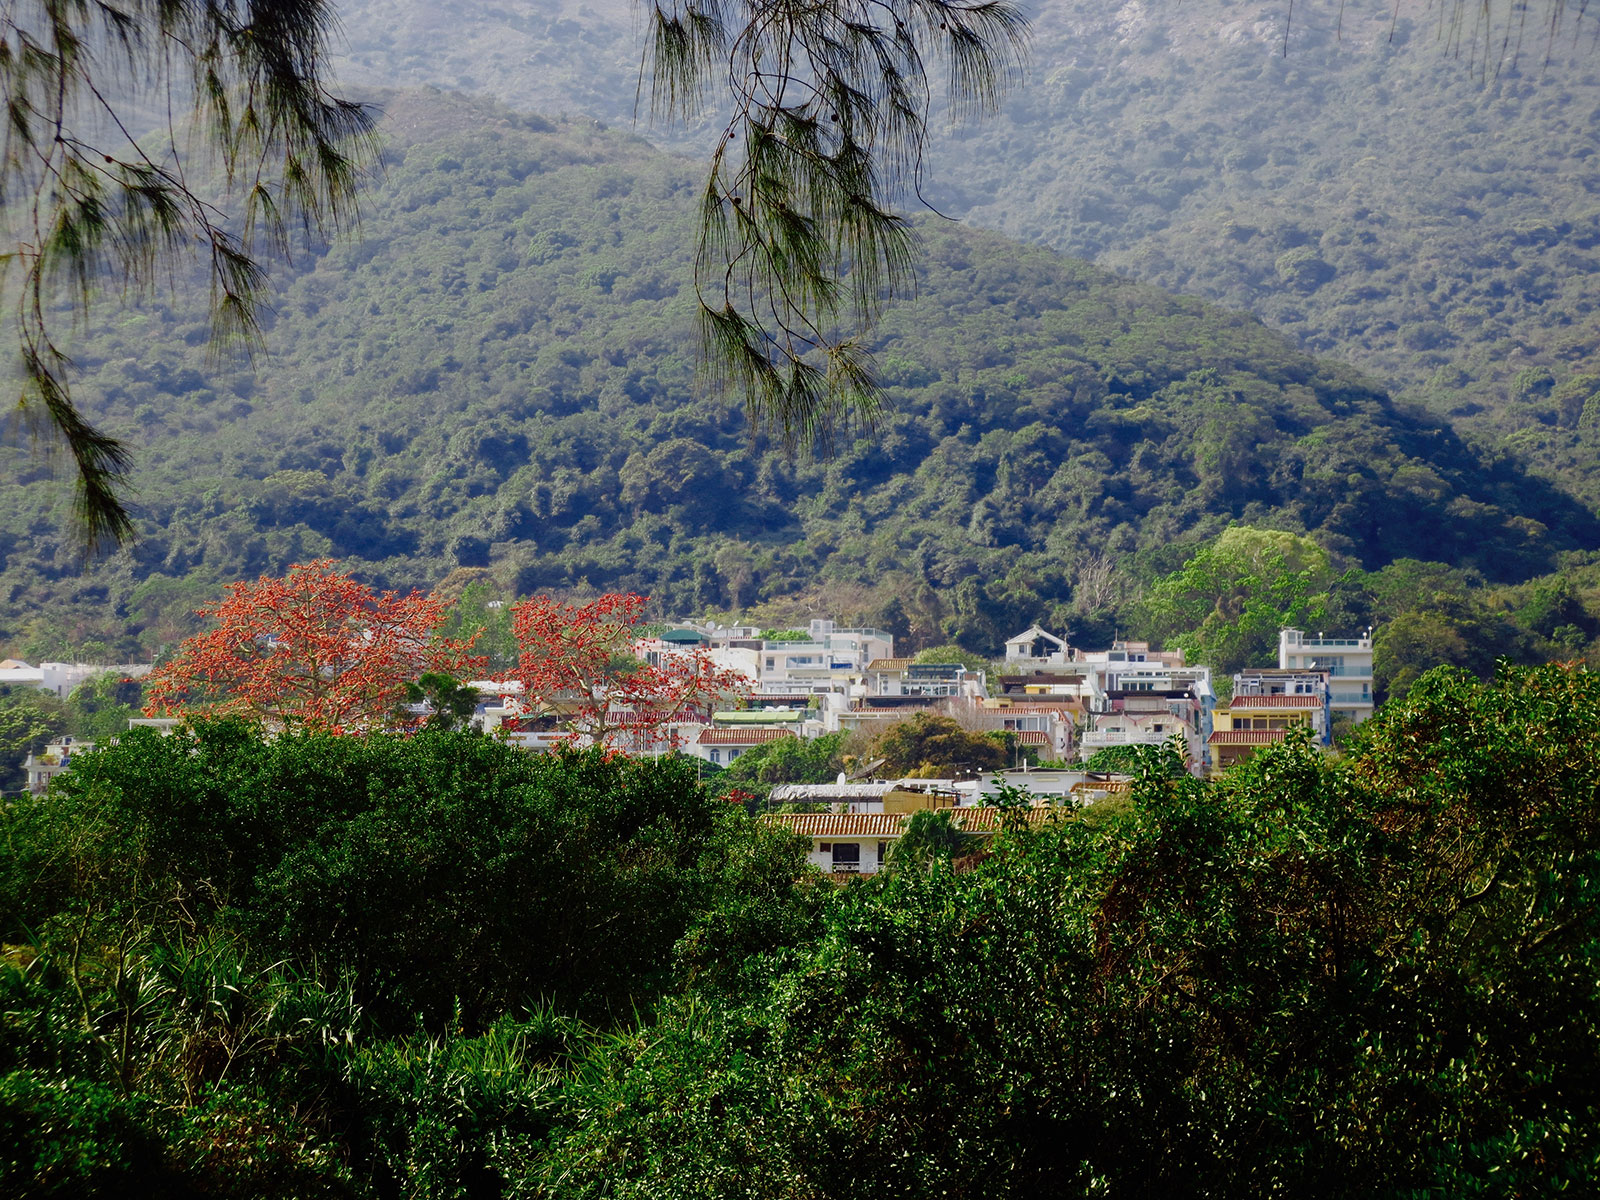 The village where I lived the last 16 years I spent in Hong Kong: Pui O, Lantau Island.